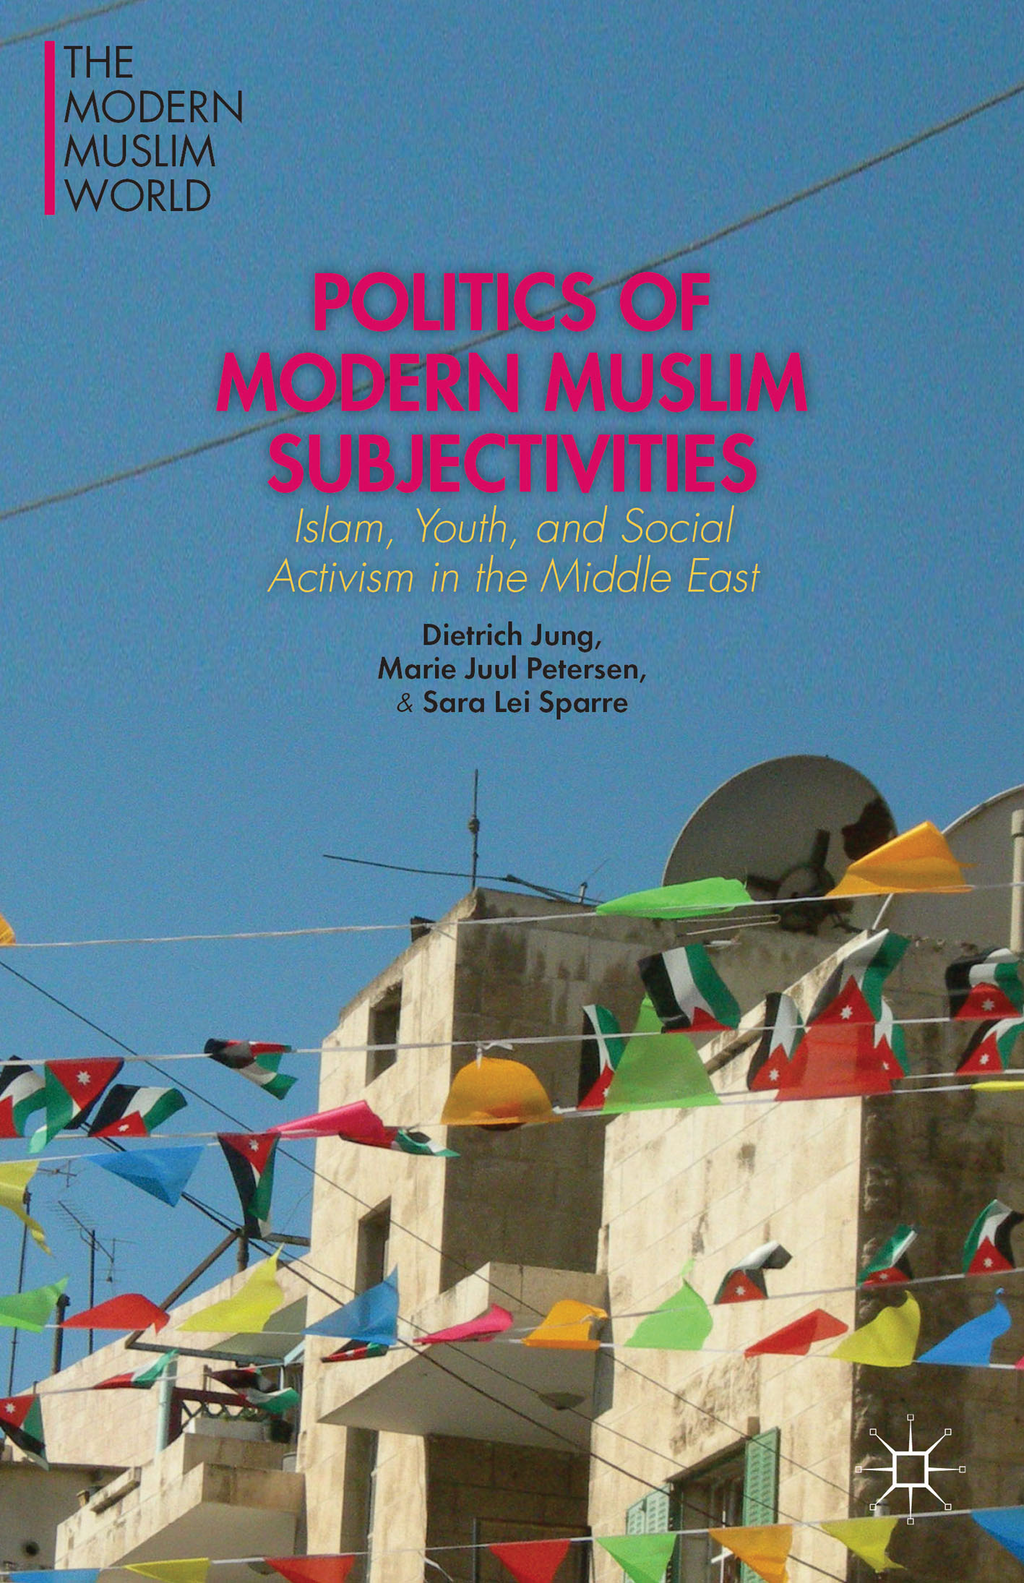 Politics of Modern Muslim Subjectivities Islam,  Youth,  and Social Activism in the Middle East